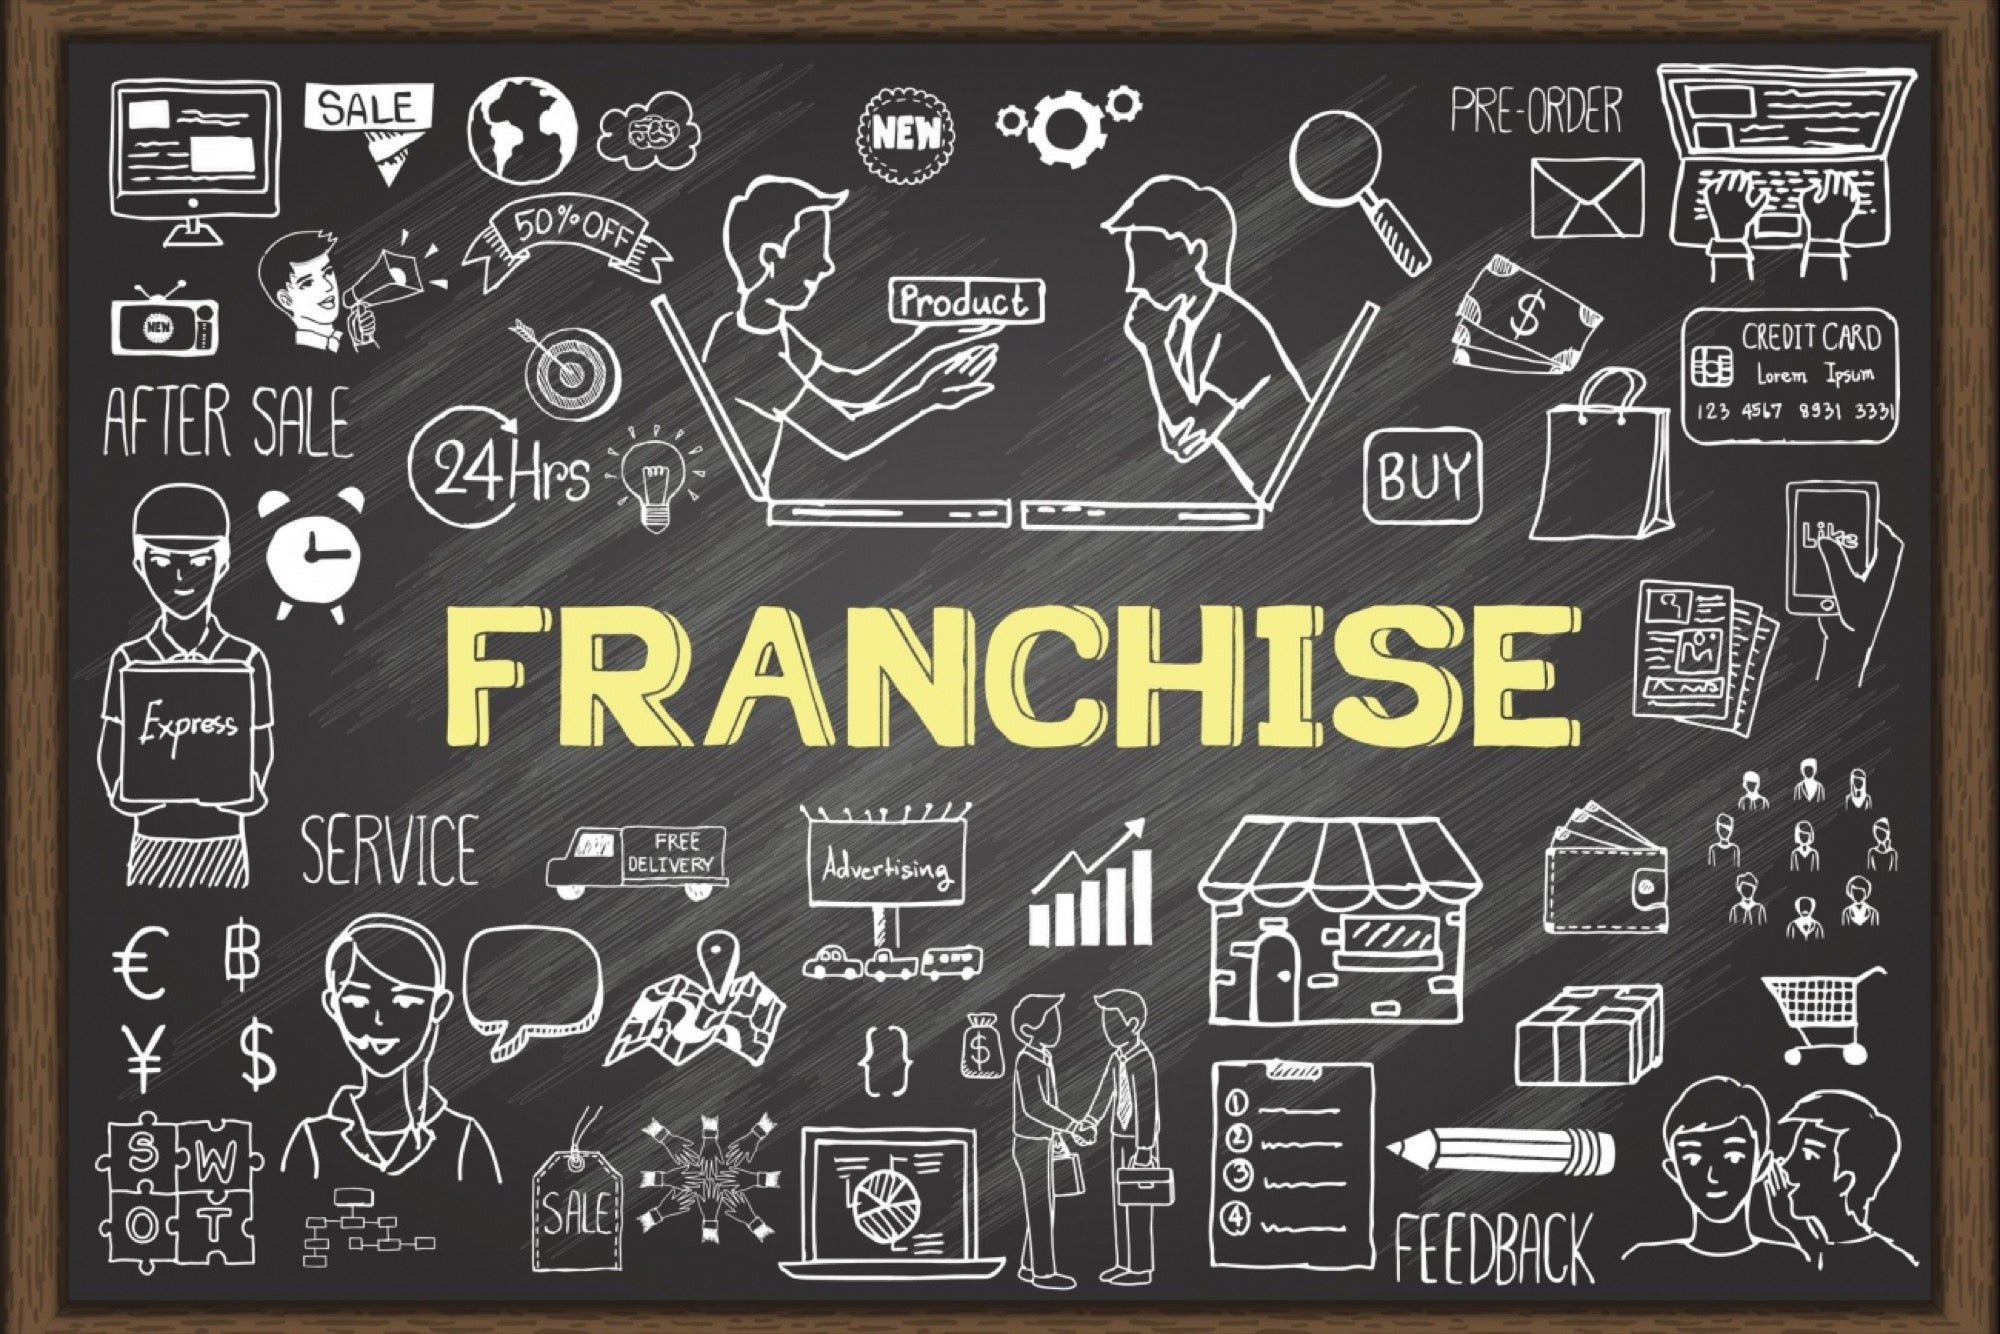 Top 10 Franchises That Can Be Run Part Time